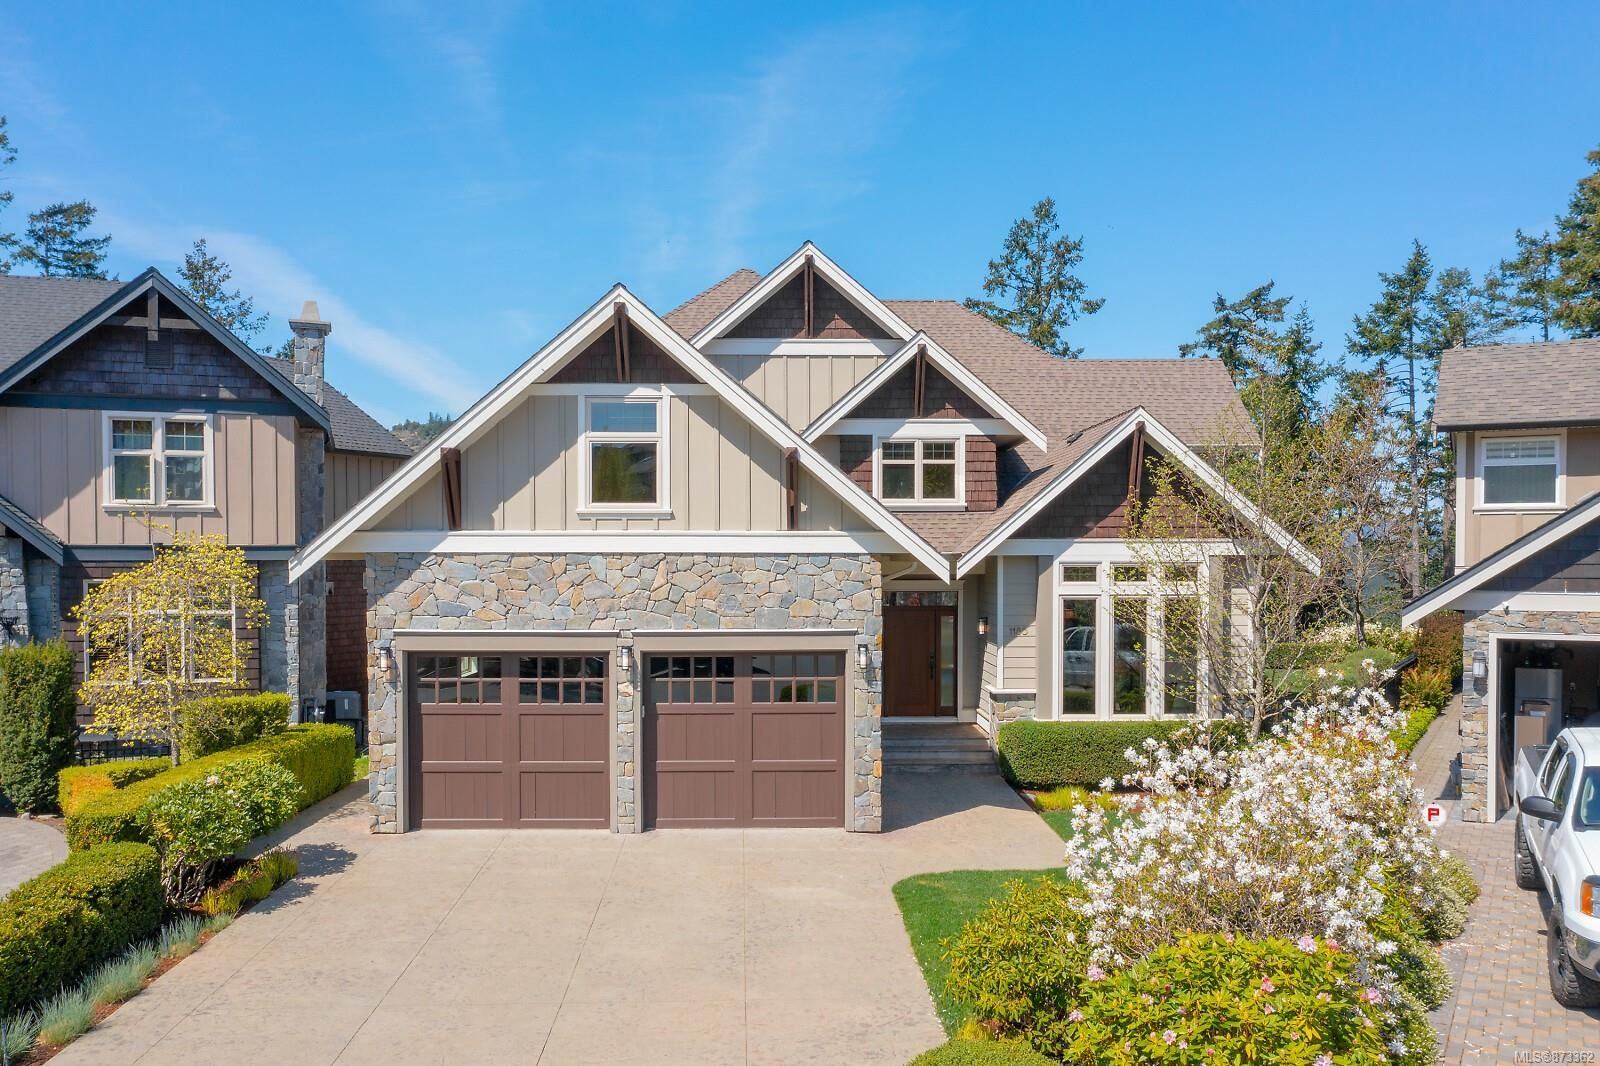 Main Photo: 1186 Deerview Pl in : La Bear Mountain House for sale (Langford)  : MLS®# 873362